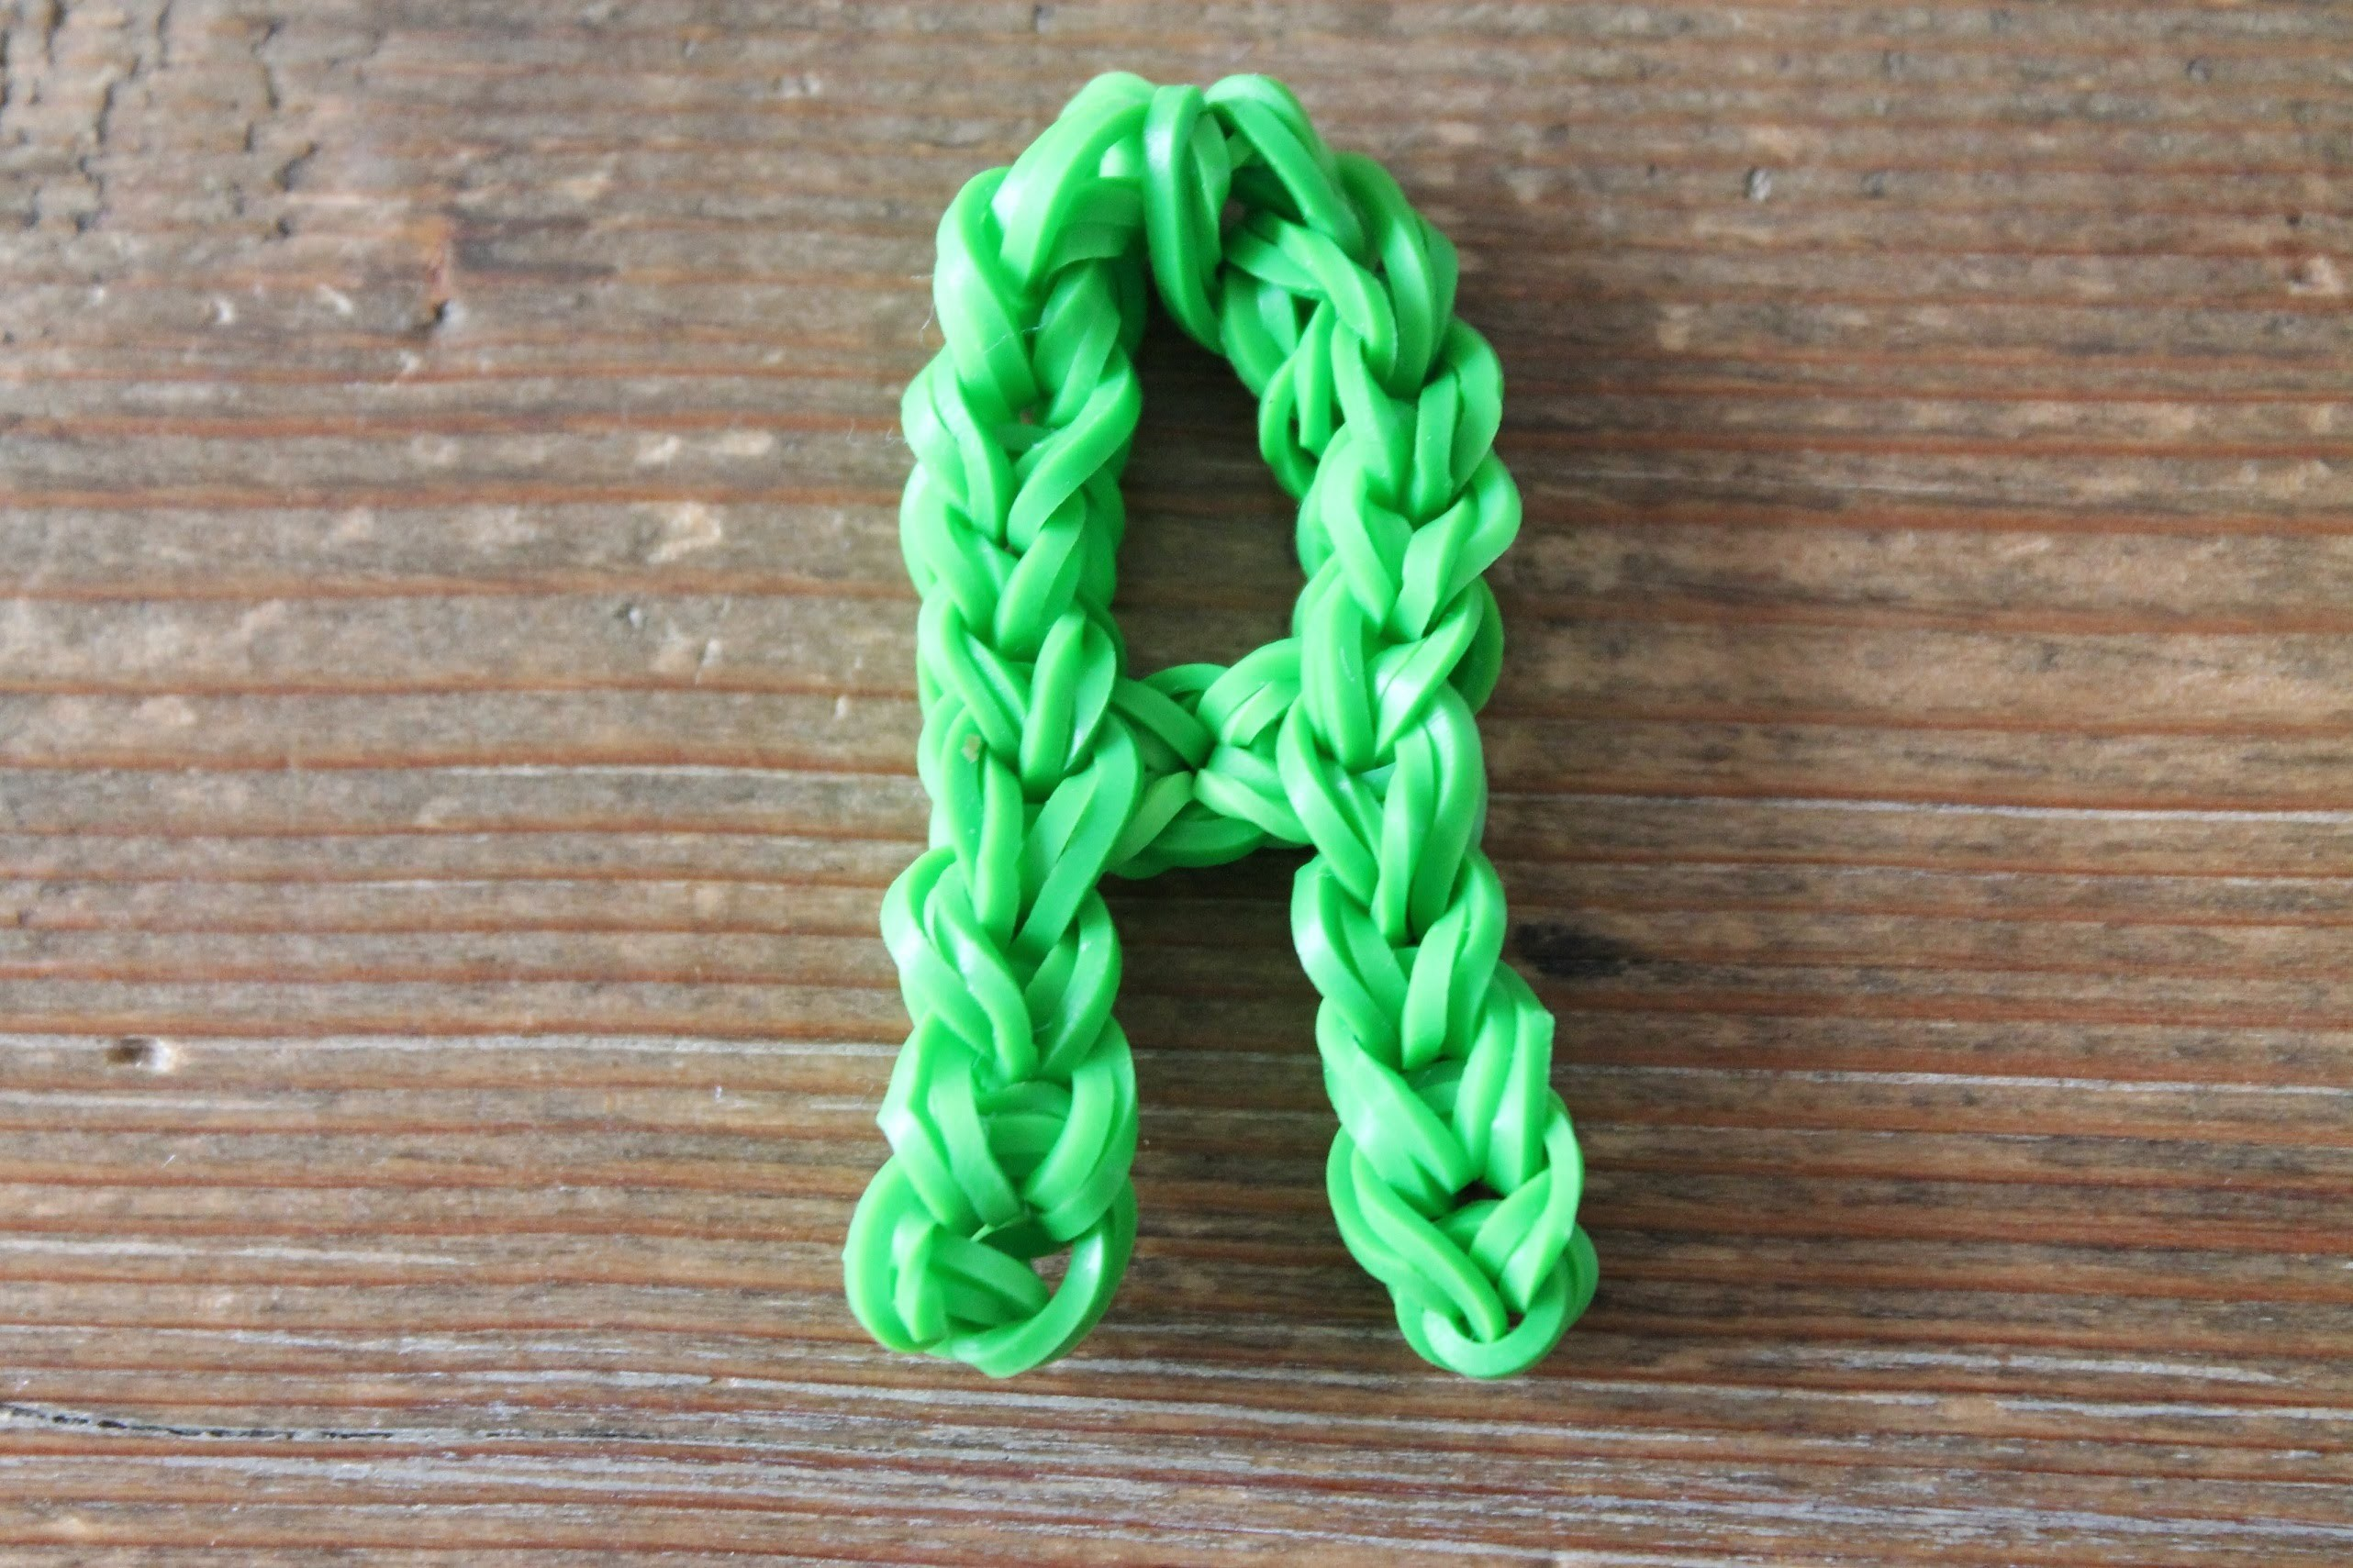 Rainbow loom Nederlands, letter A